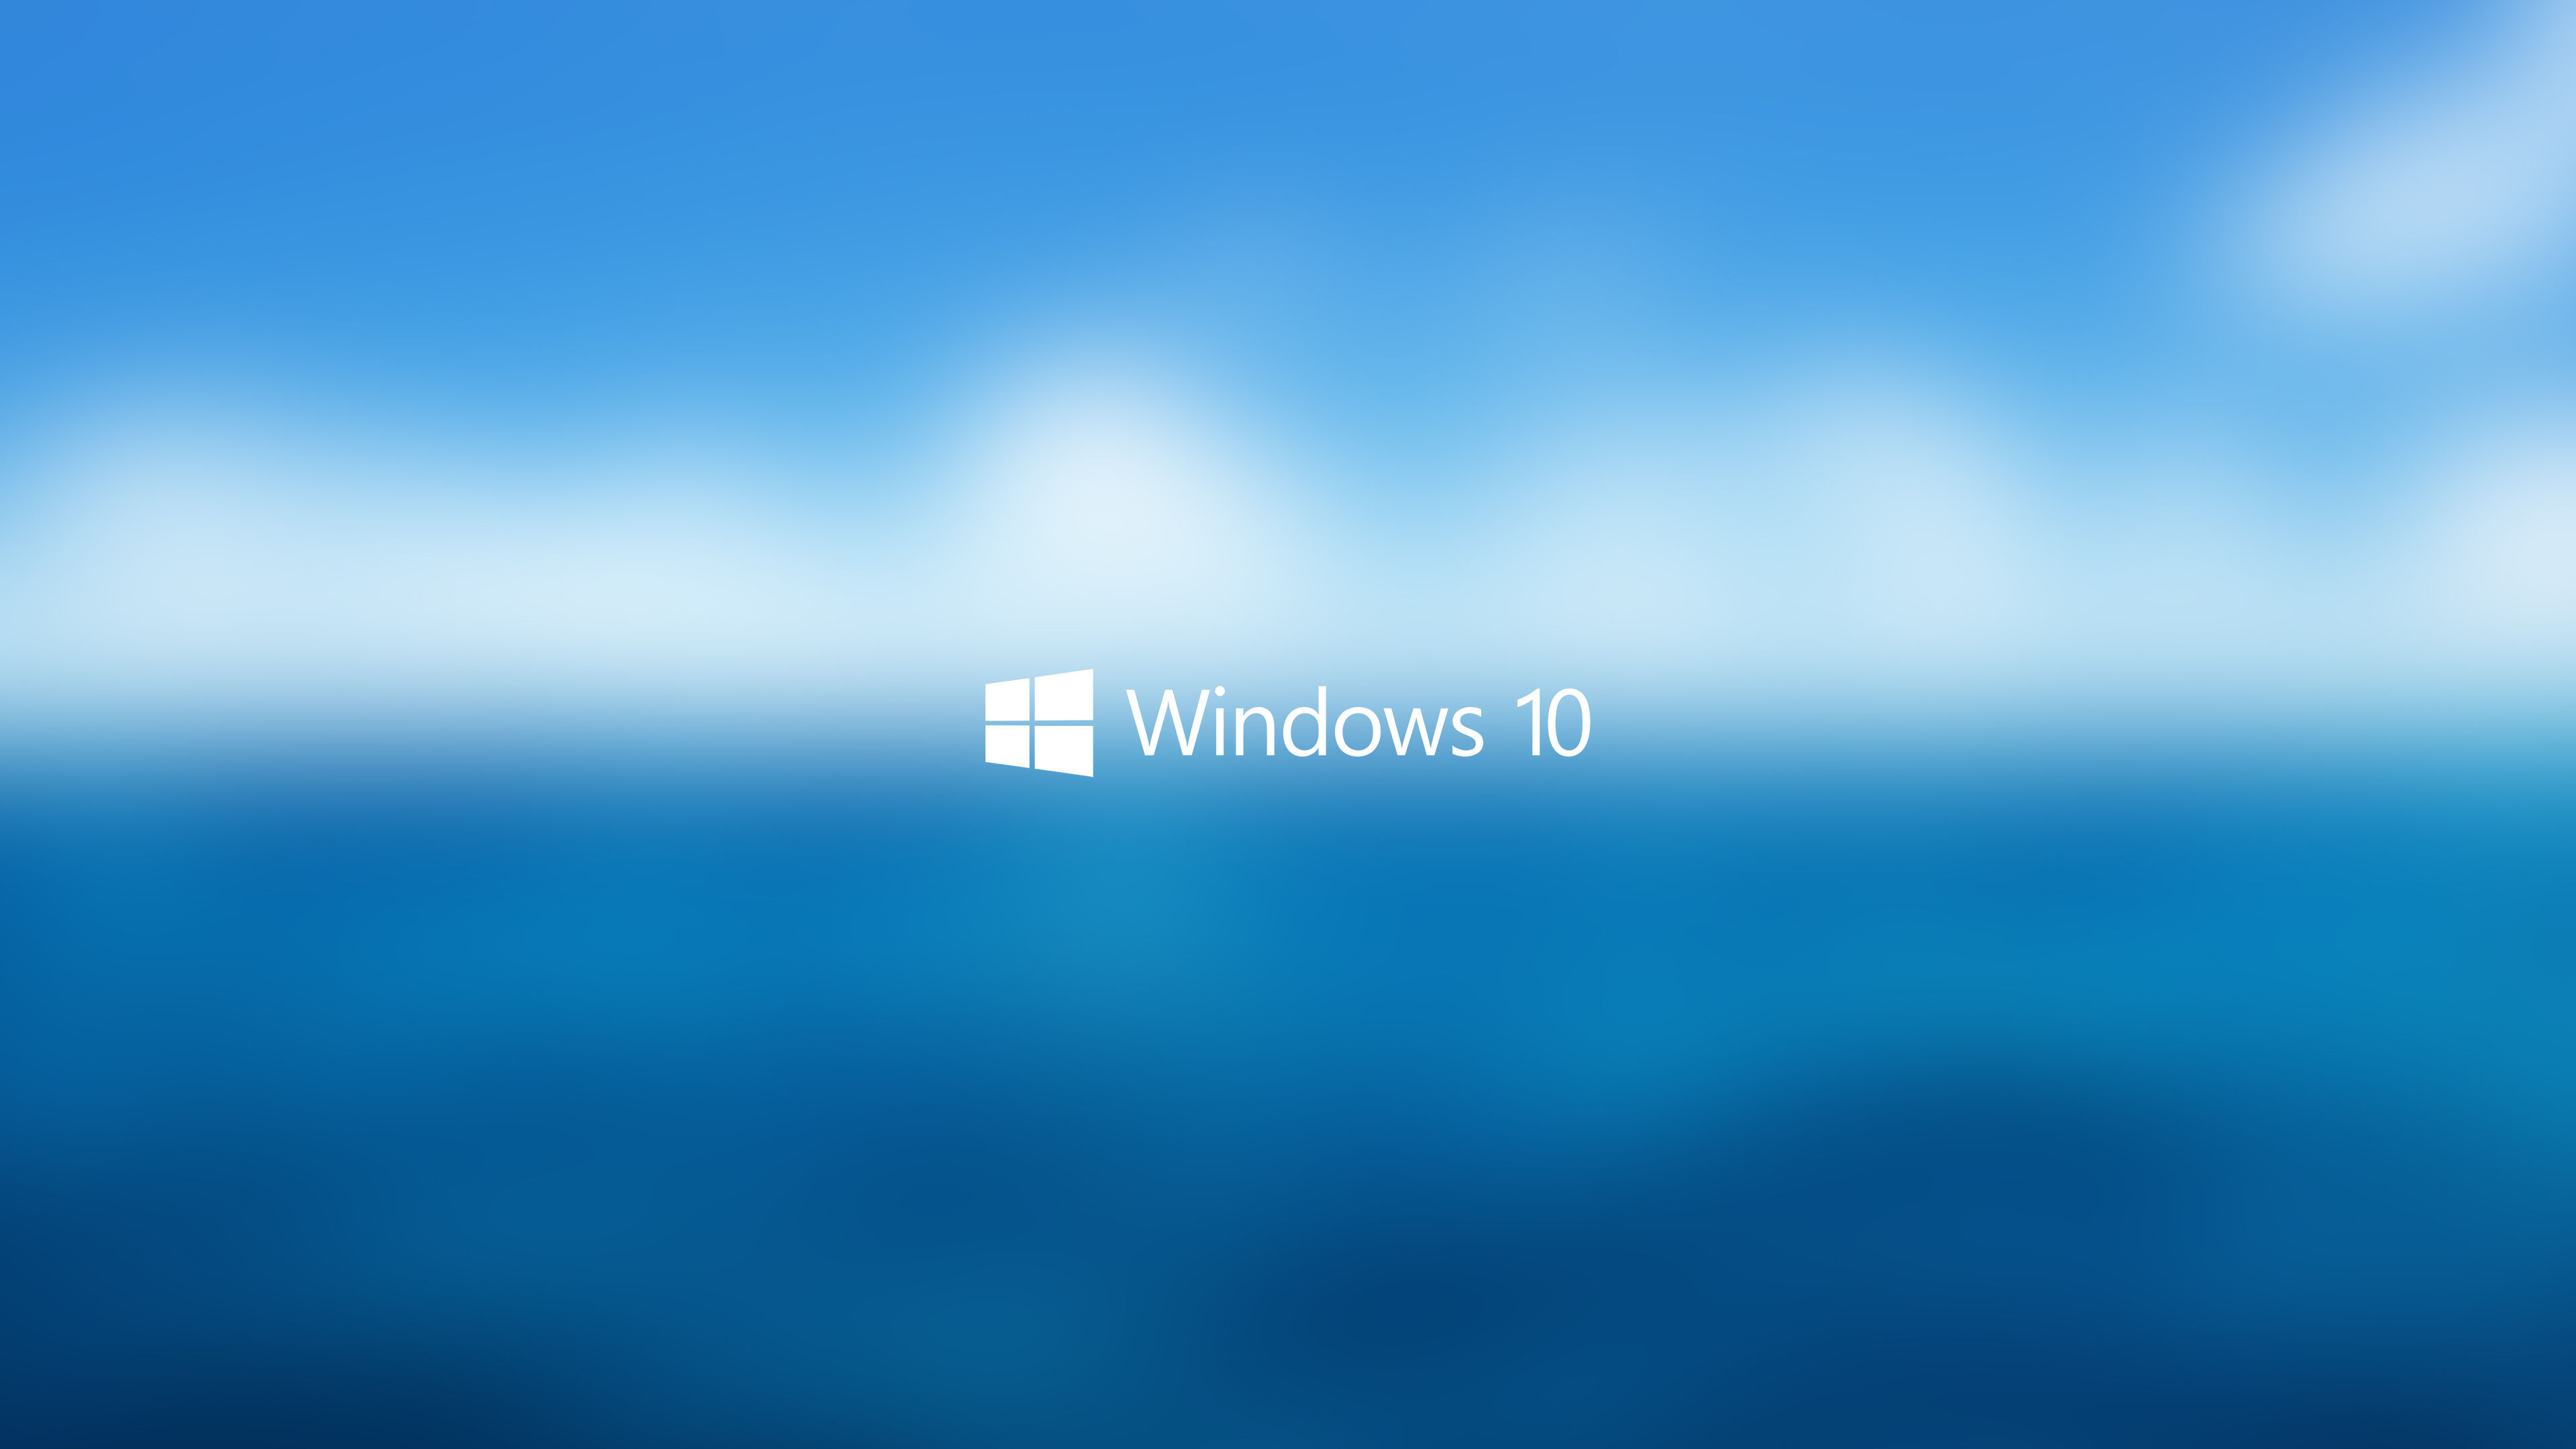 Wallpapers windows 10 maximumwallhd for Microsoft win10